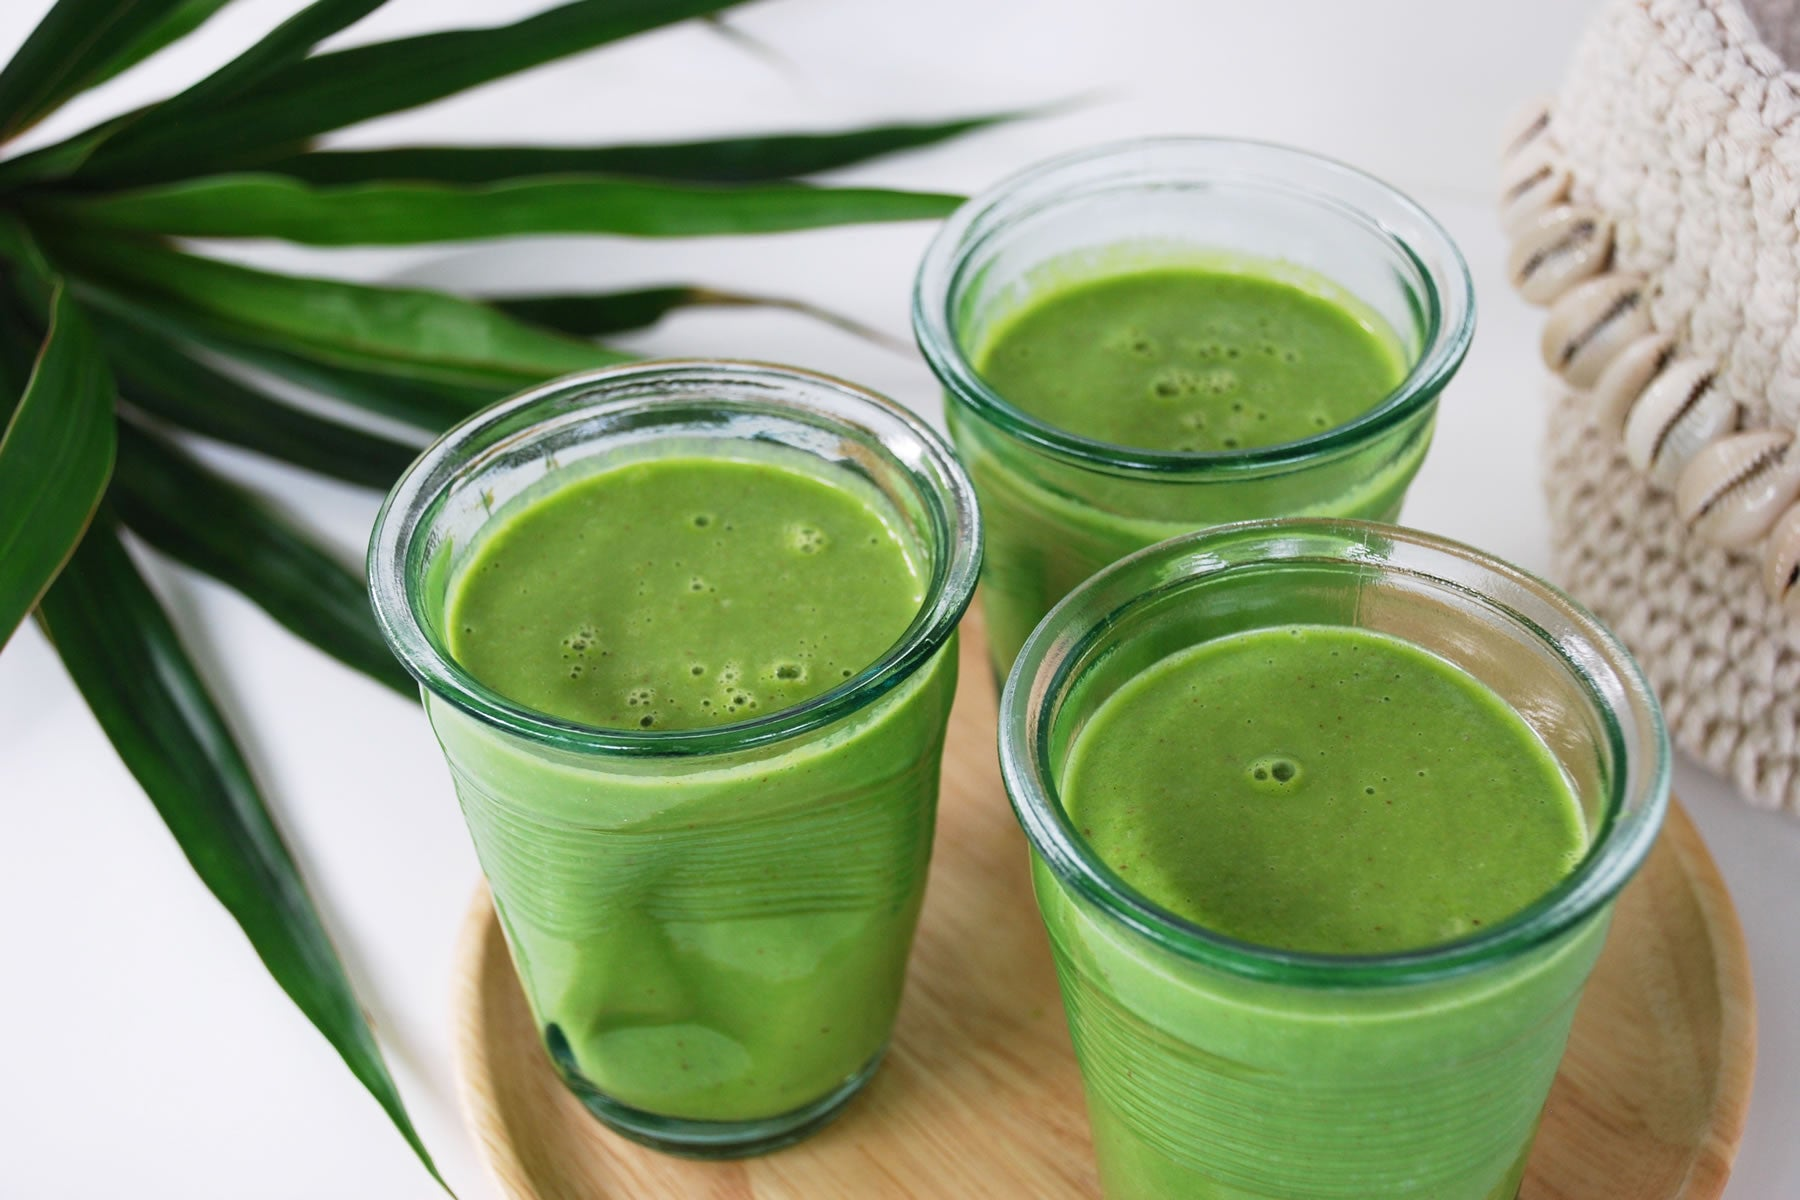 Recipe: Green Smoothies 101